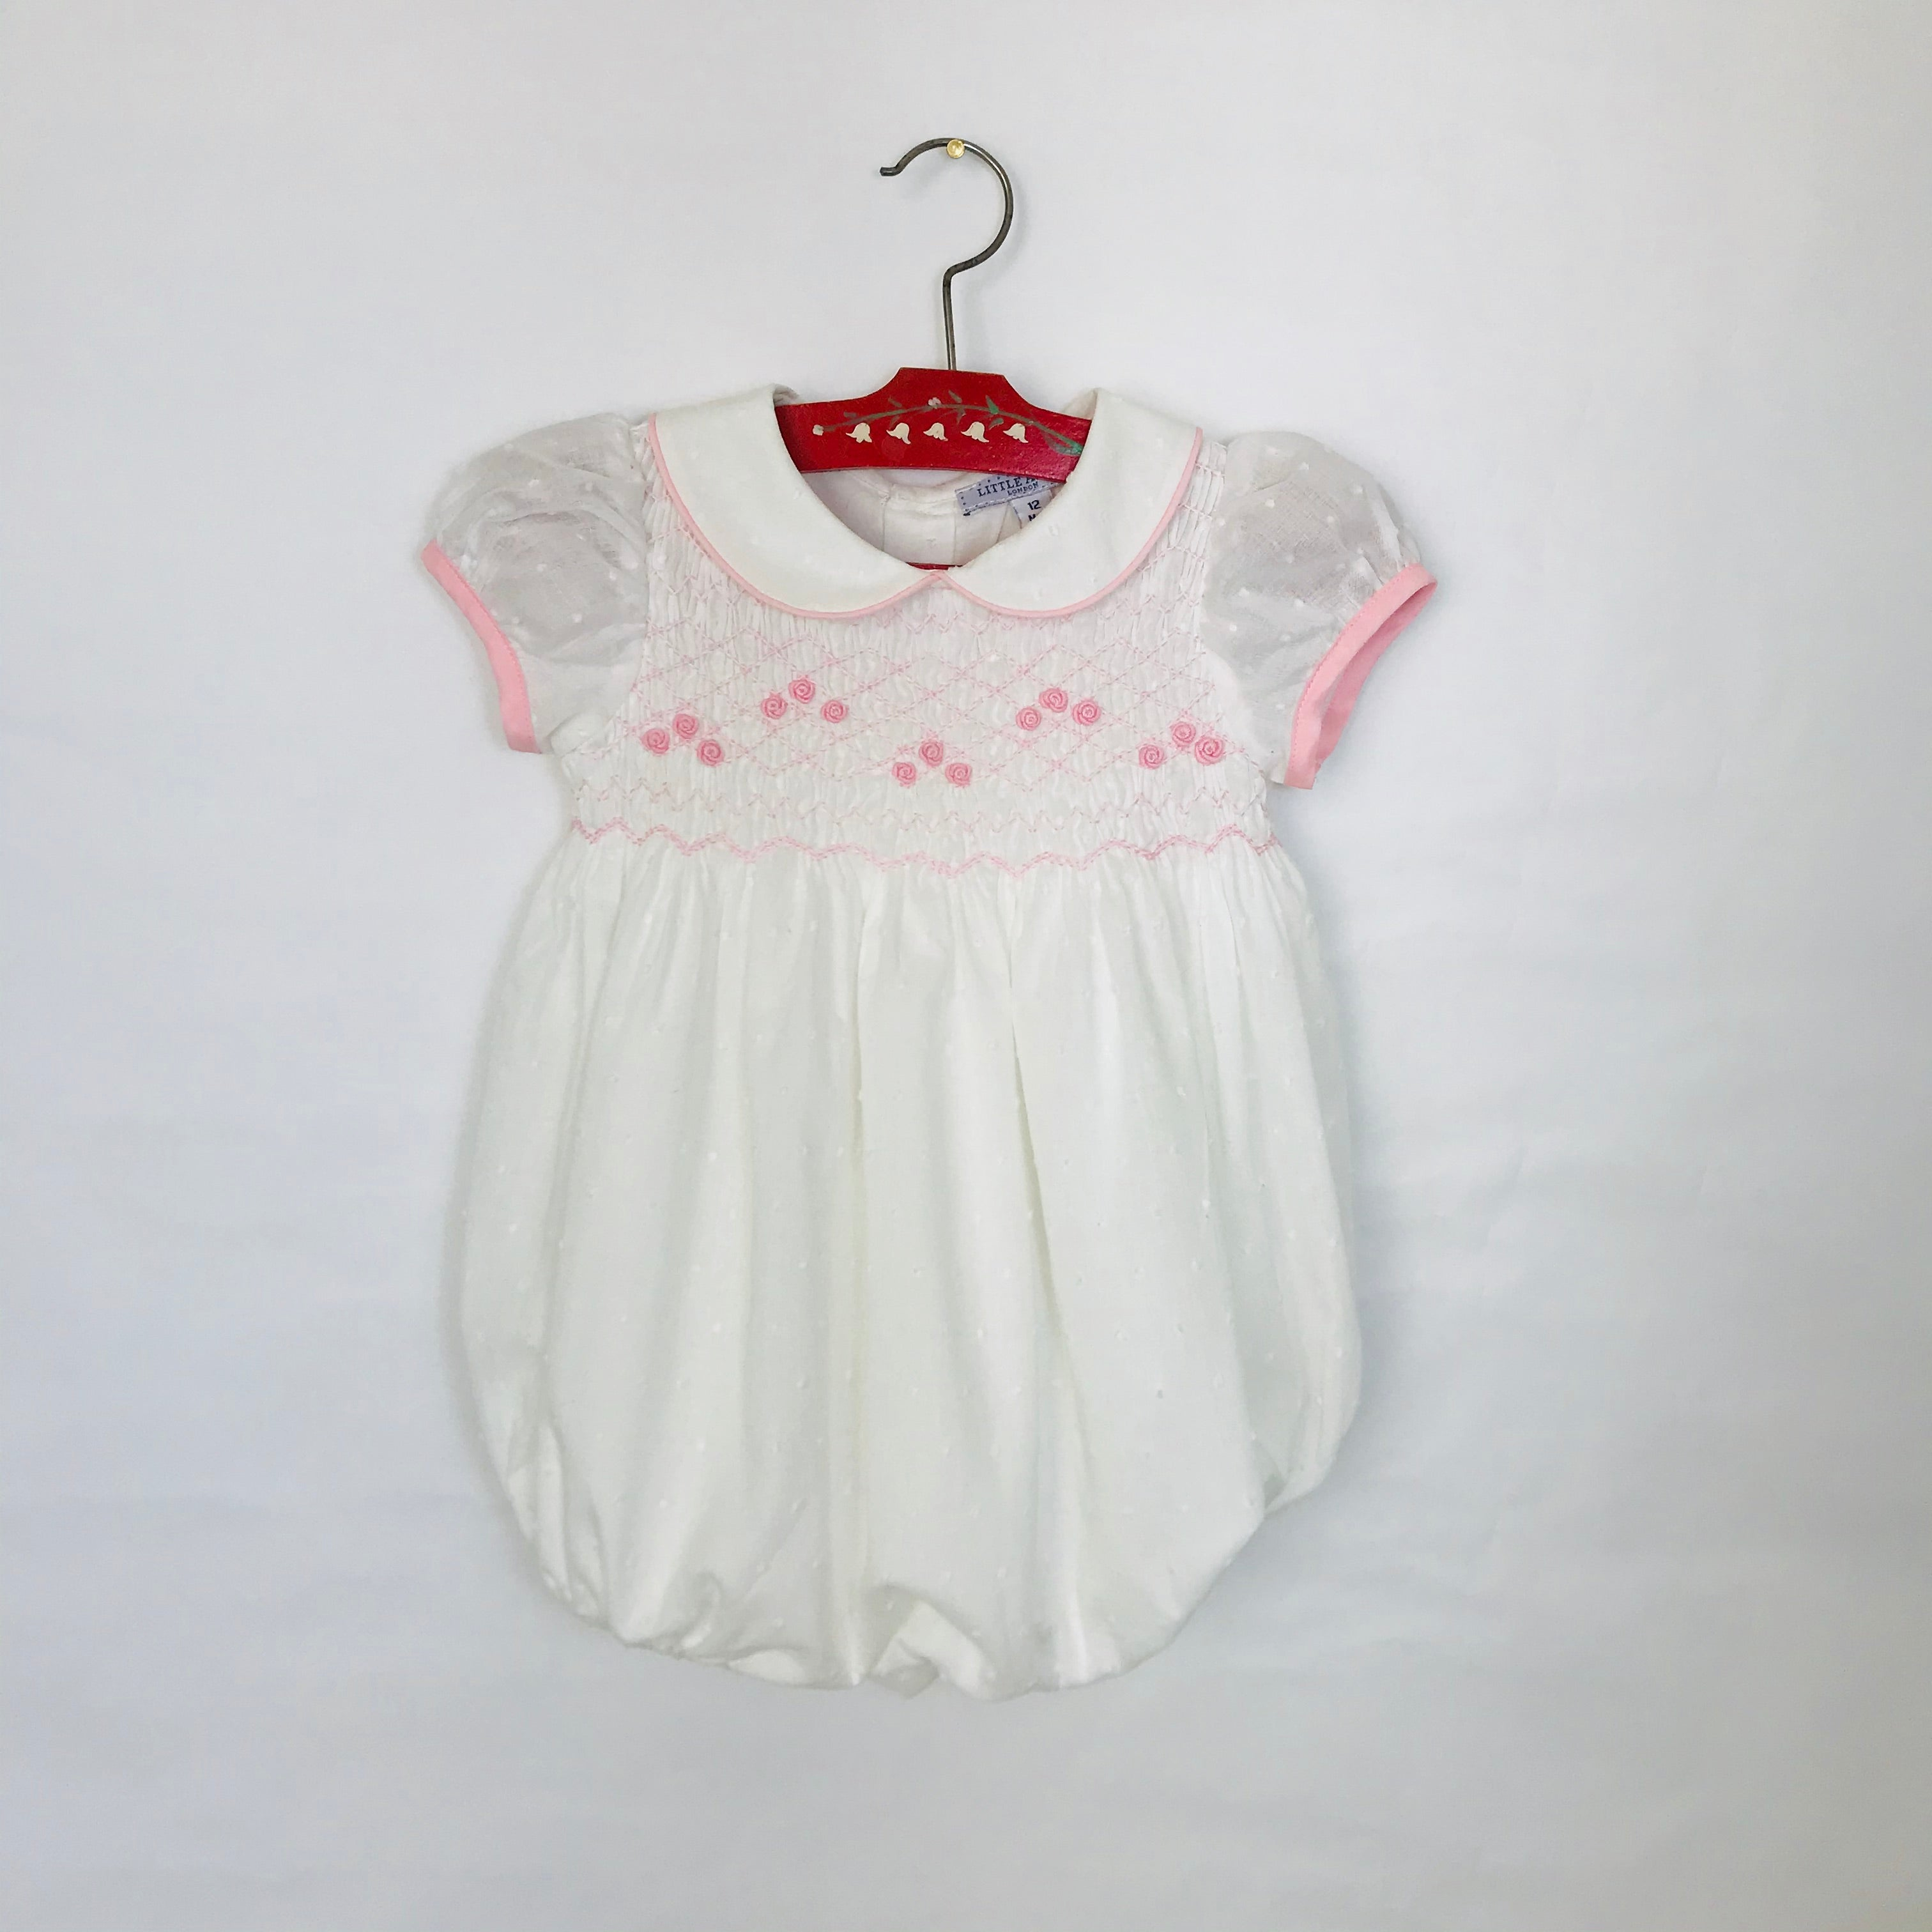 Gypsophila Romper with pink smocking